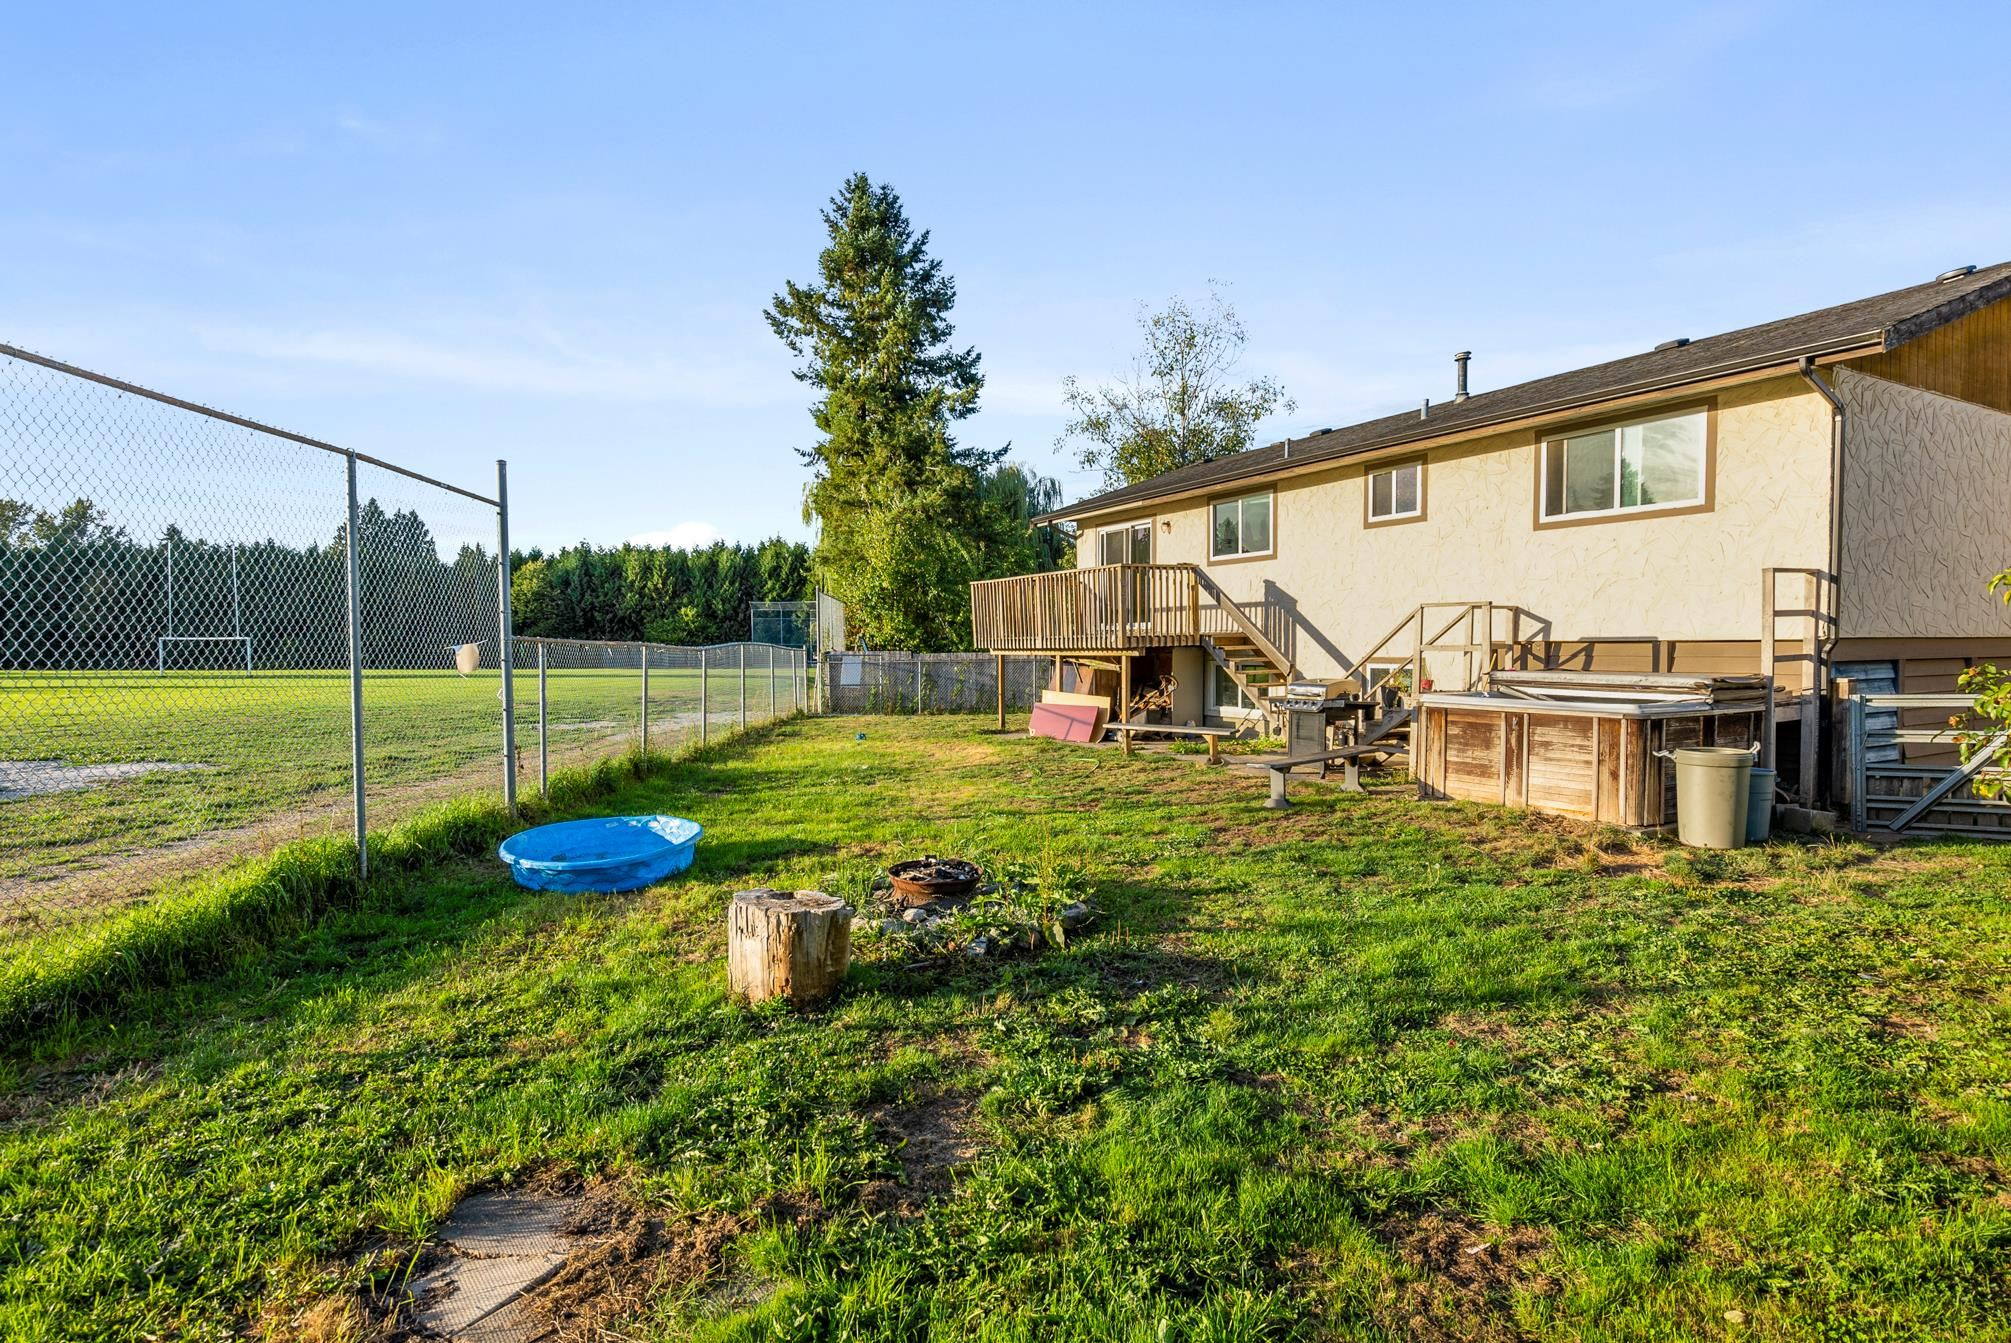 20506 48B AVENUE - Langley City House/Single Family for sale, 4 Bedrooms (R2614937) - #18